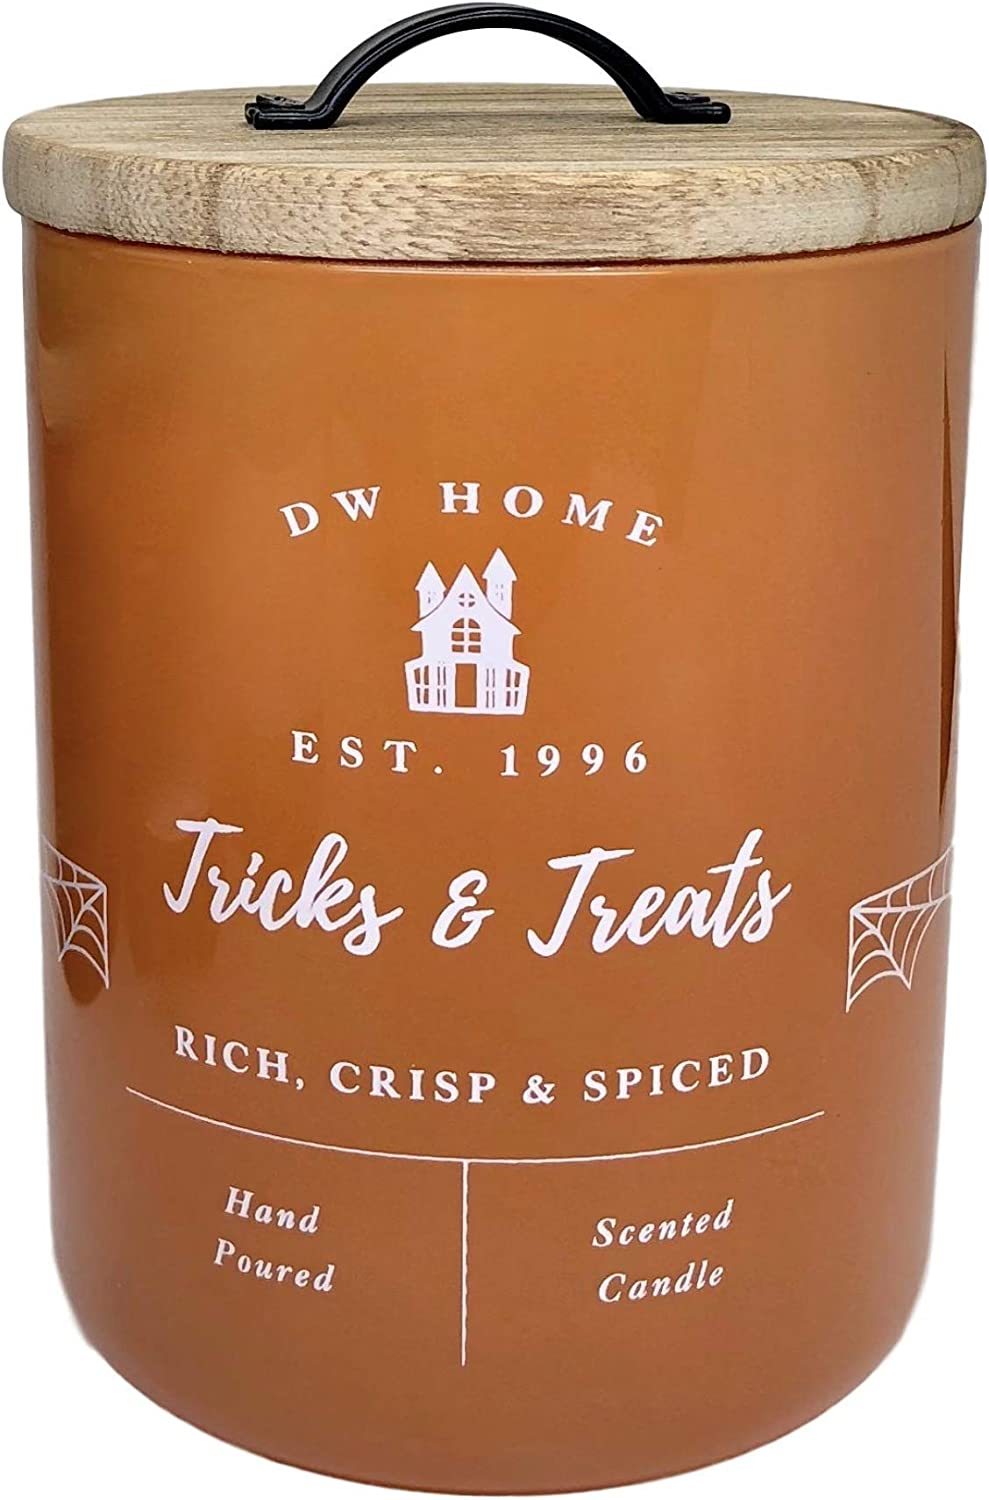 DW Home Tricks and Treats Oak Aged Bourbon Scented One Wick Candle